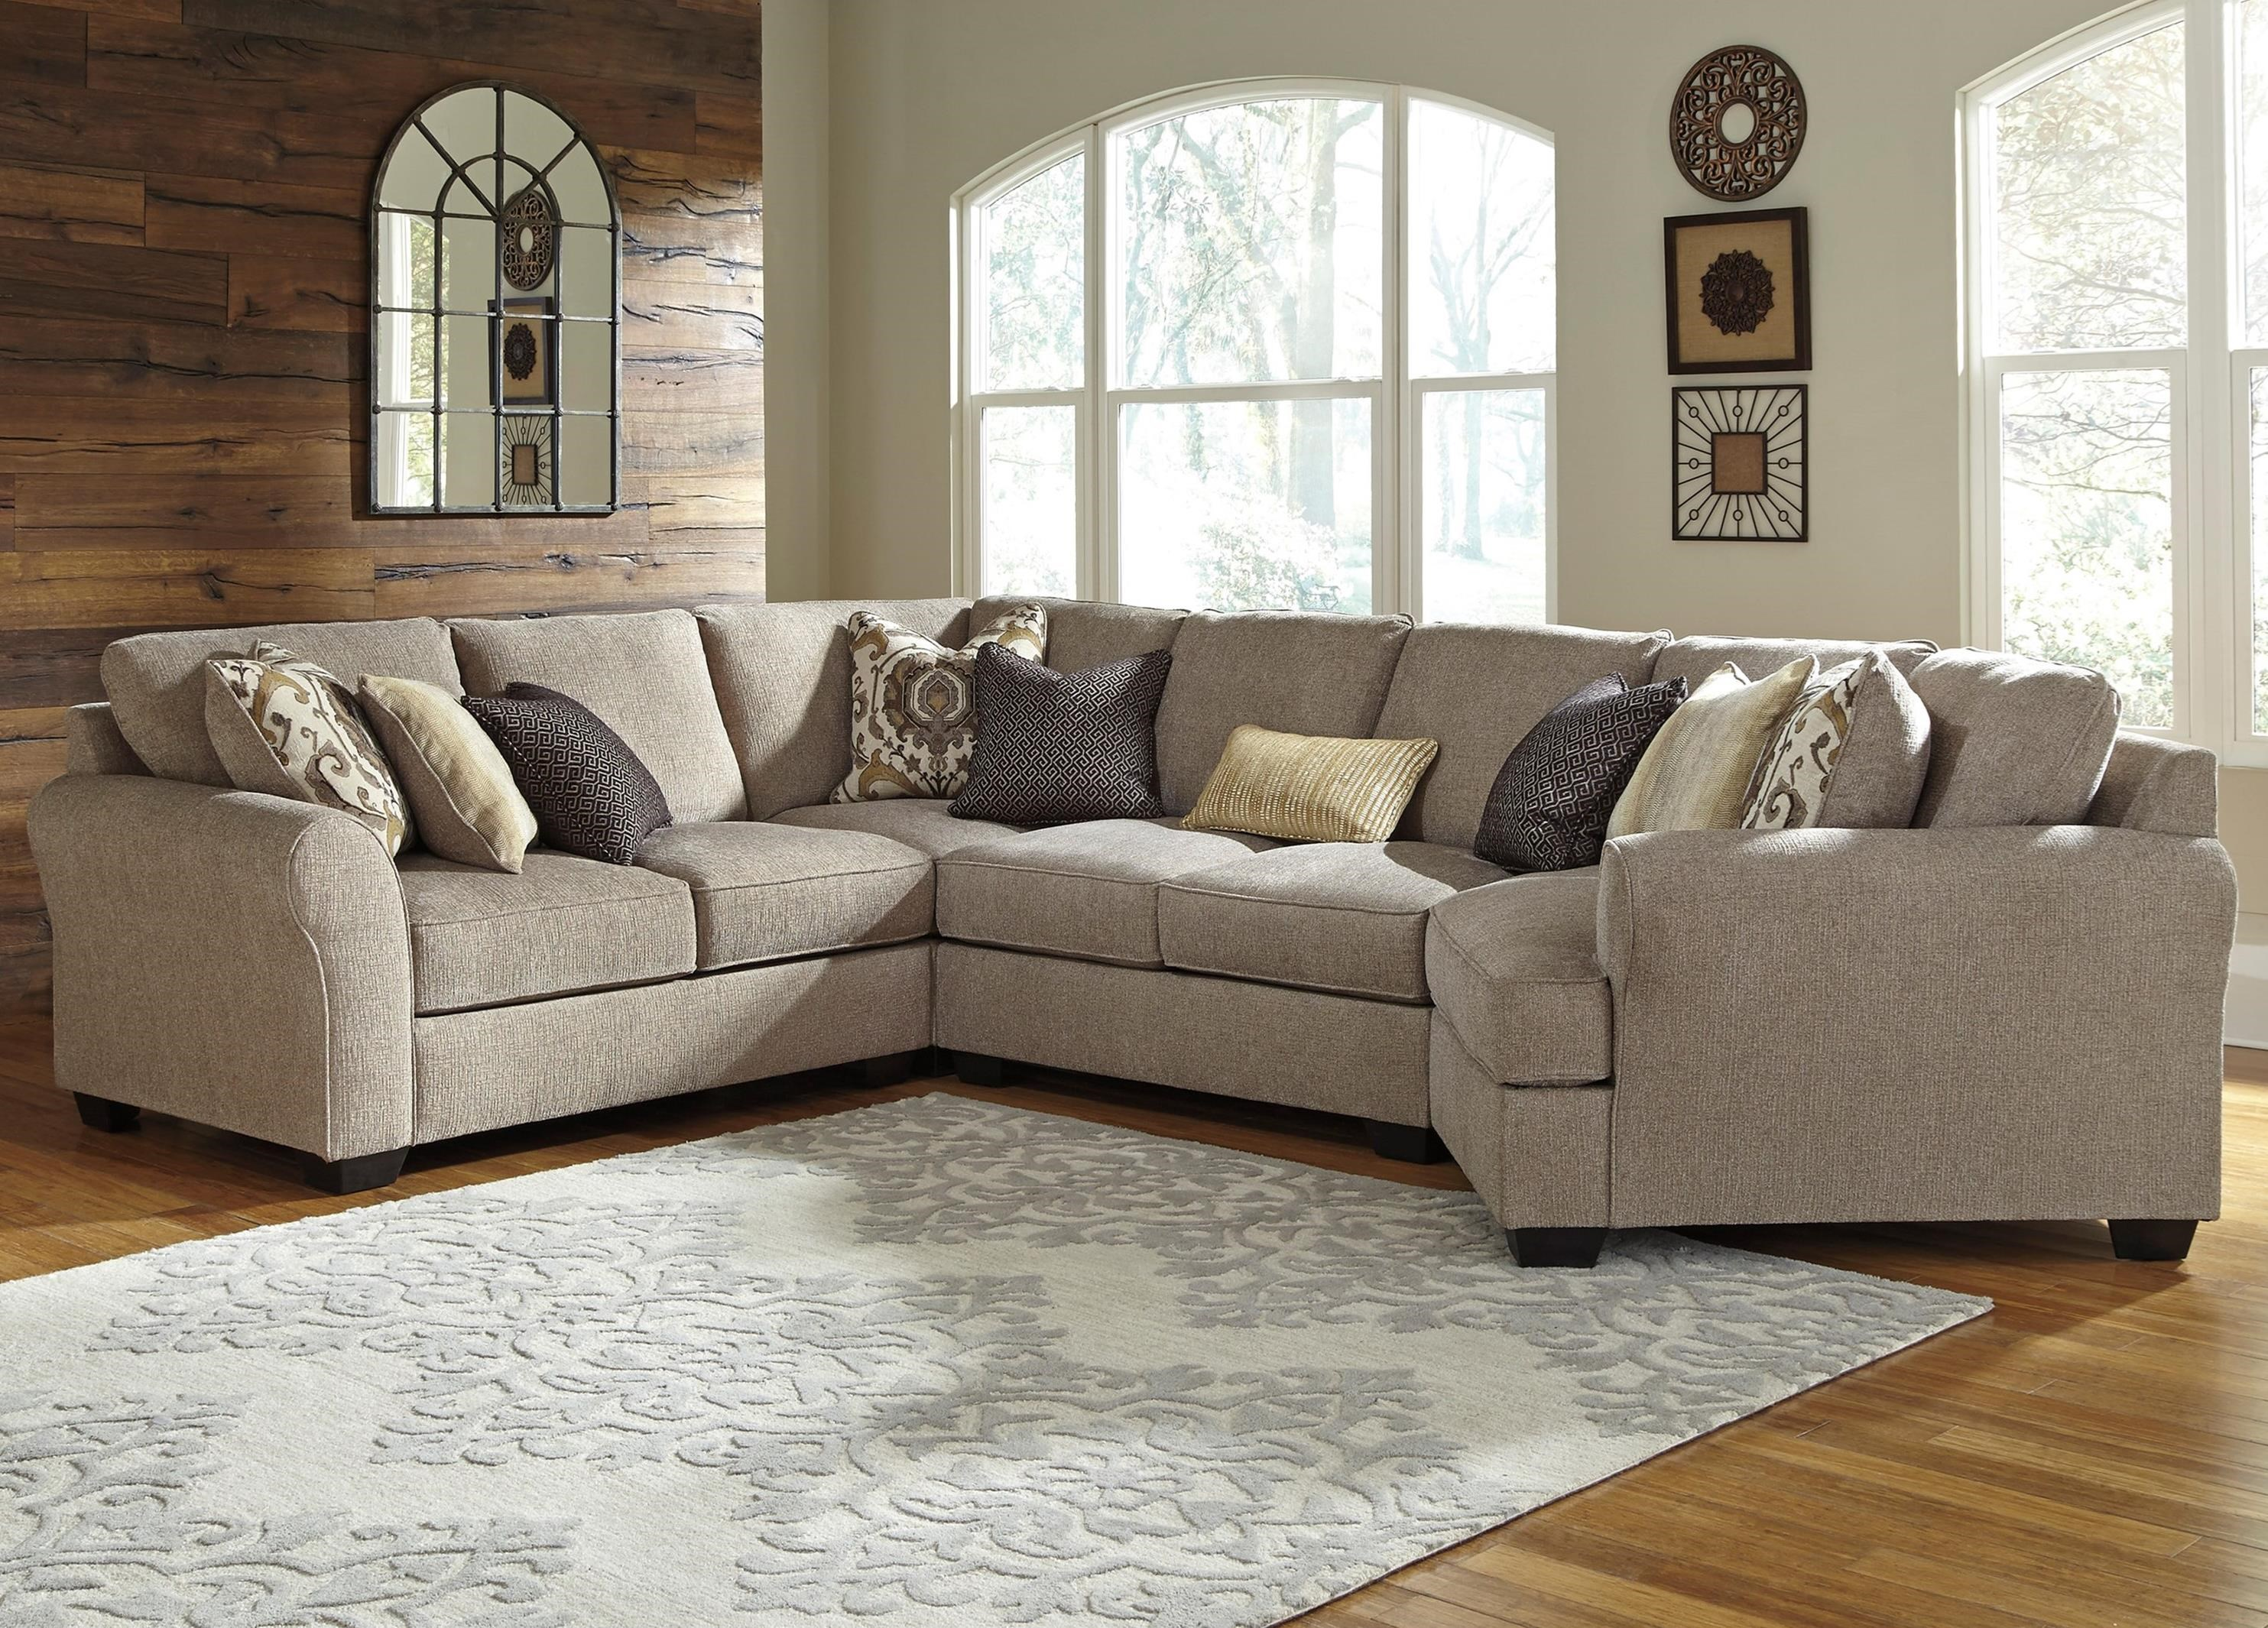 Pantomine 4-Piece Sectional with Right Cuddler by Benchcraft at Walker's Furniture